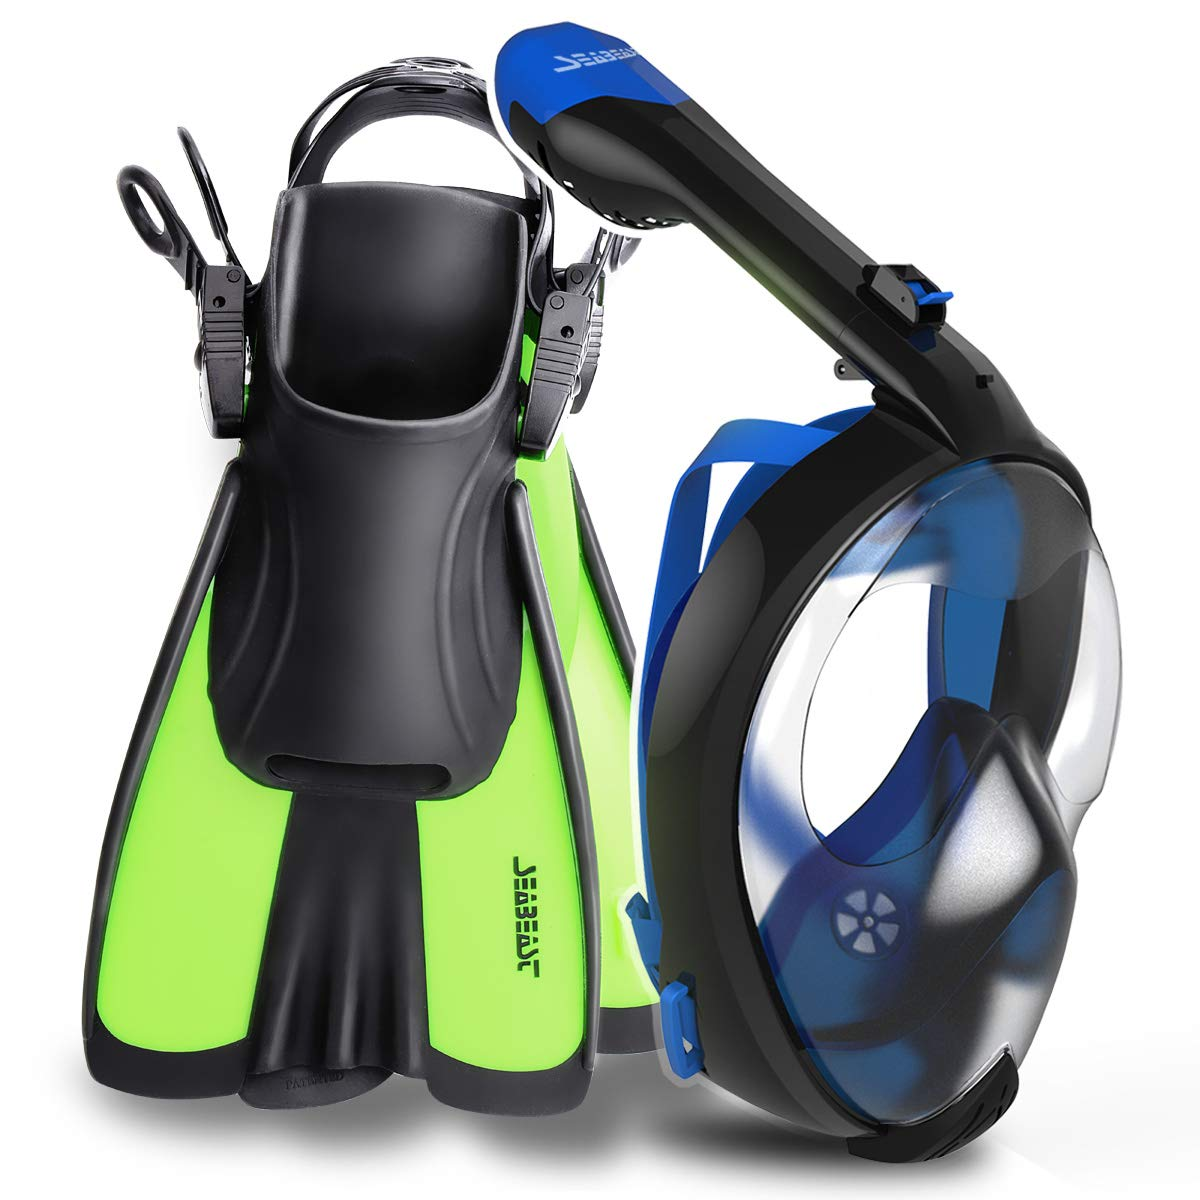 SEABEAST Snorkel Set with AF90 Full Face Snorkeling Mask and SF01 Open Foot Snorkel Fins?